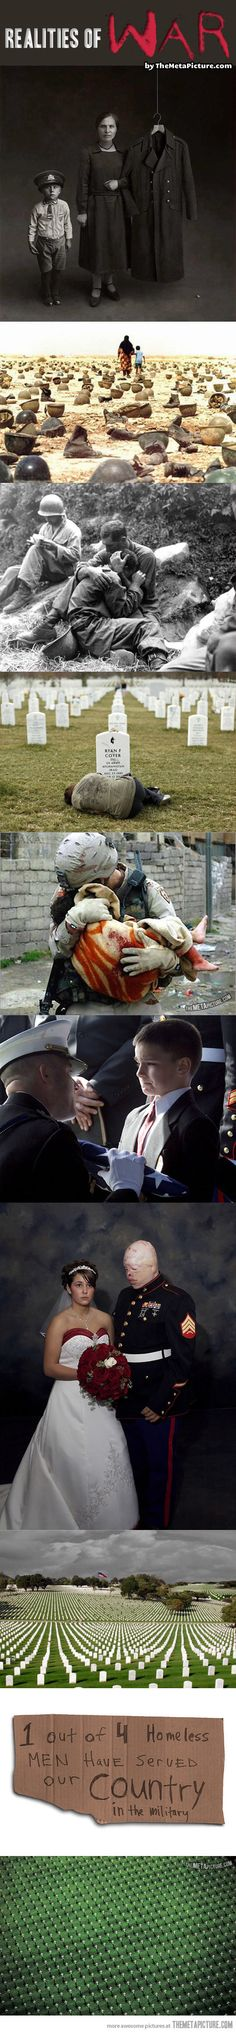 Realities of war… Not awesome. Very heart breaking